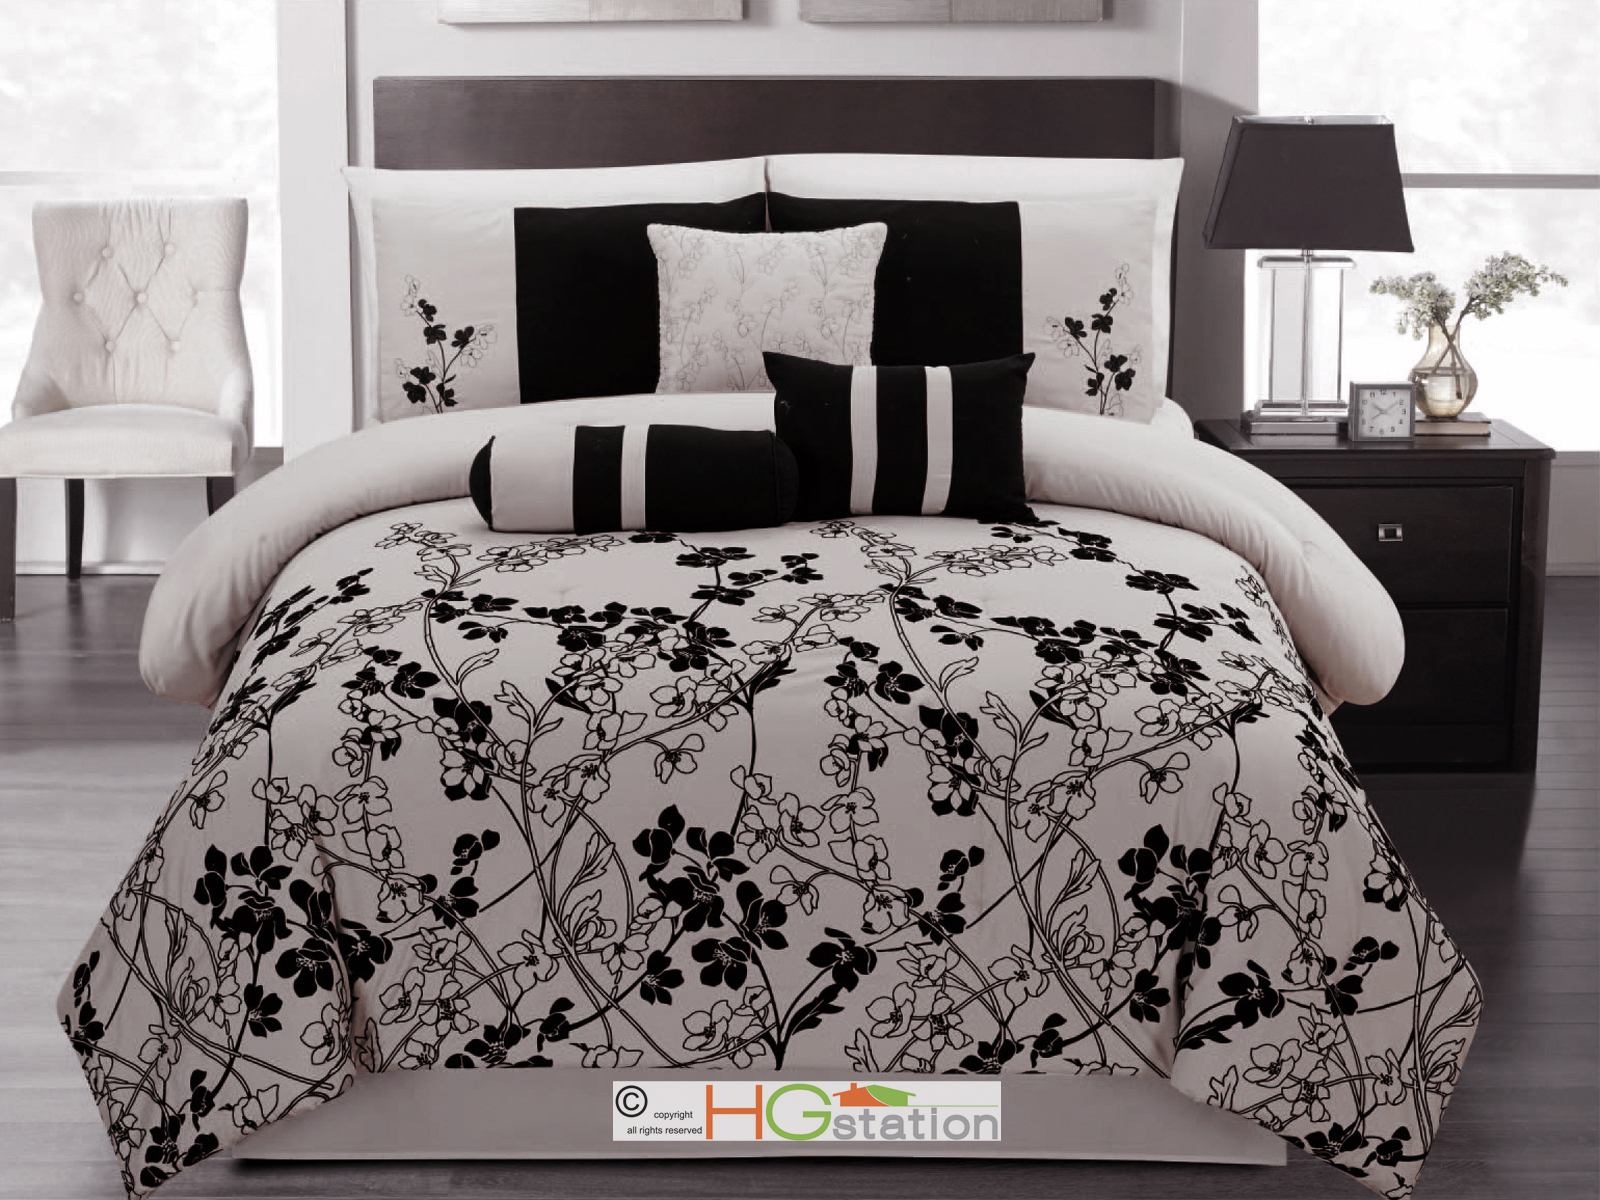 and bedding khaki camouflage whitetail ridge collection comforters camo comforter sheets sets trading